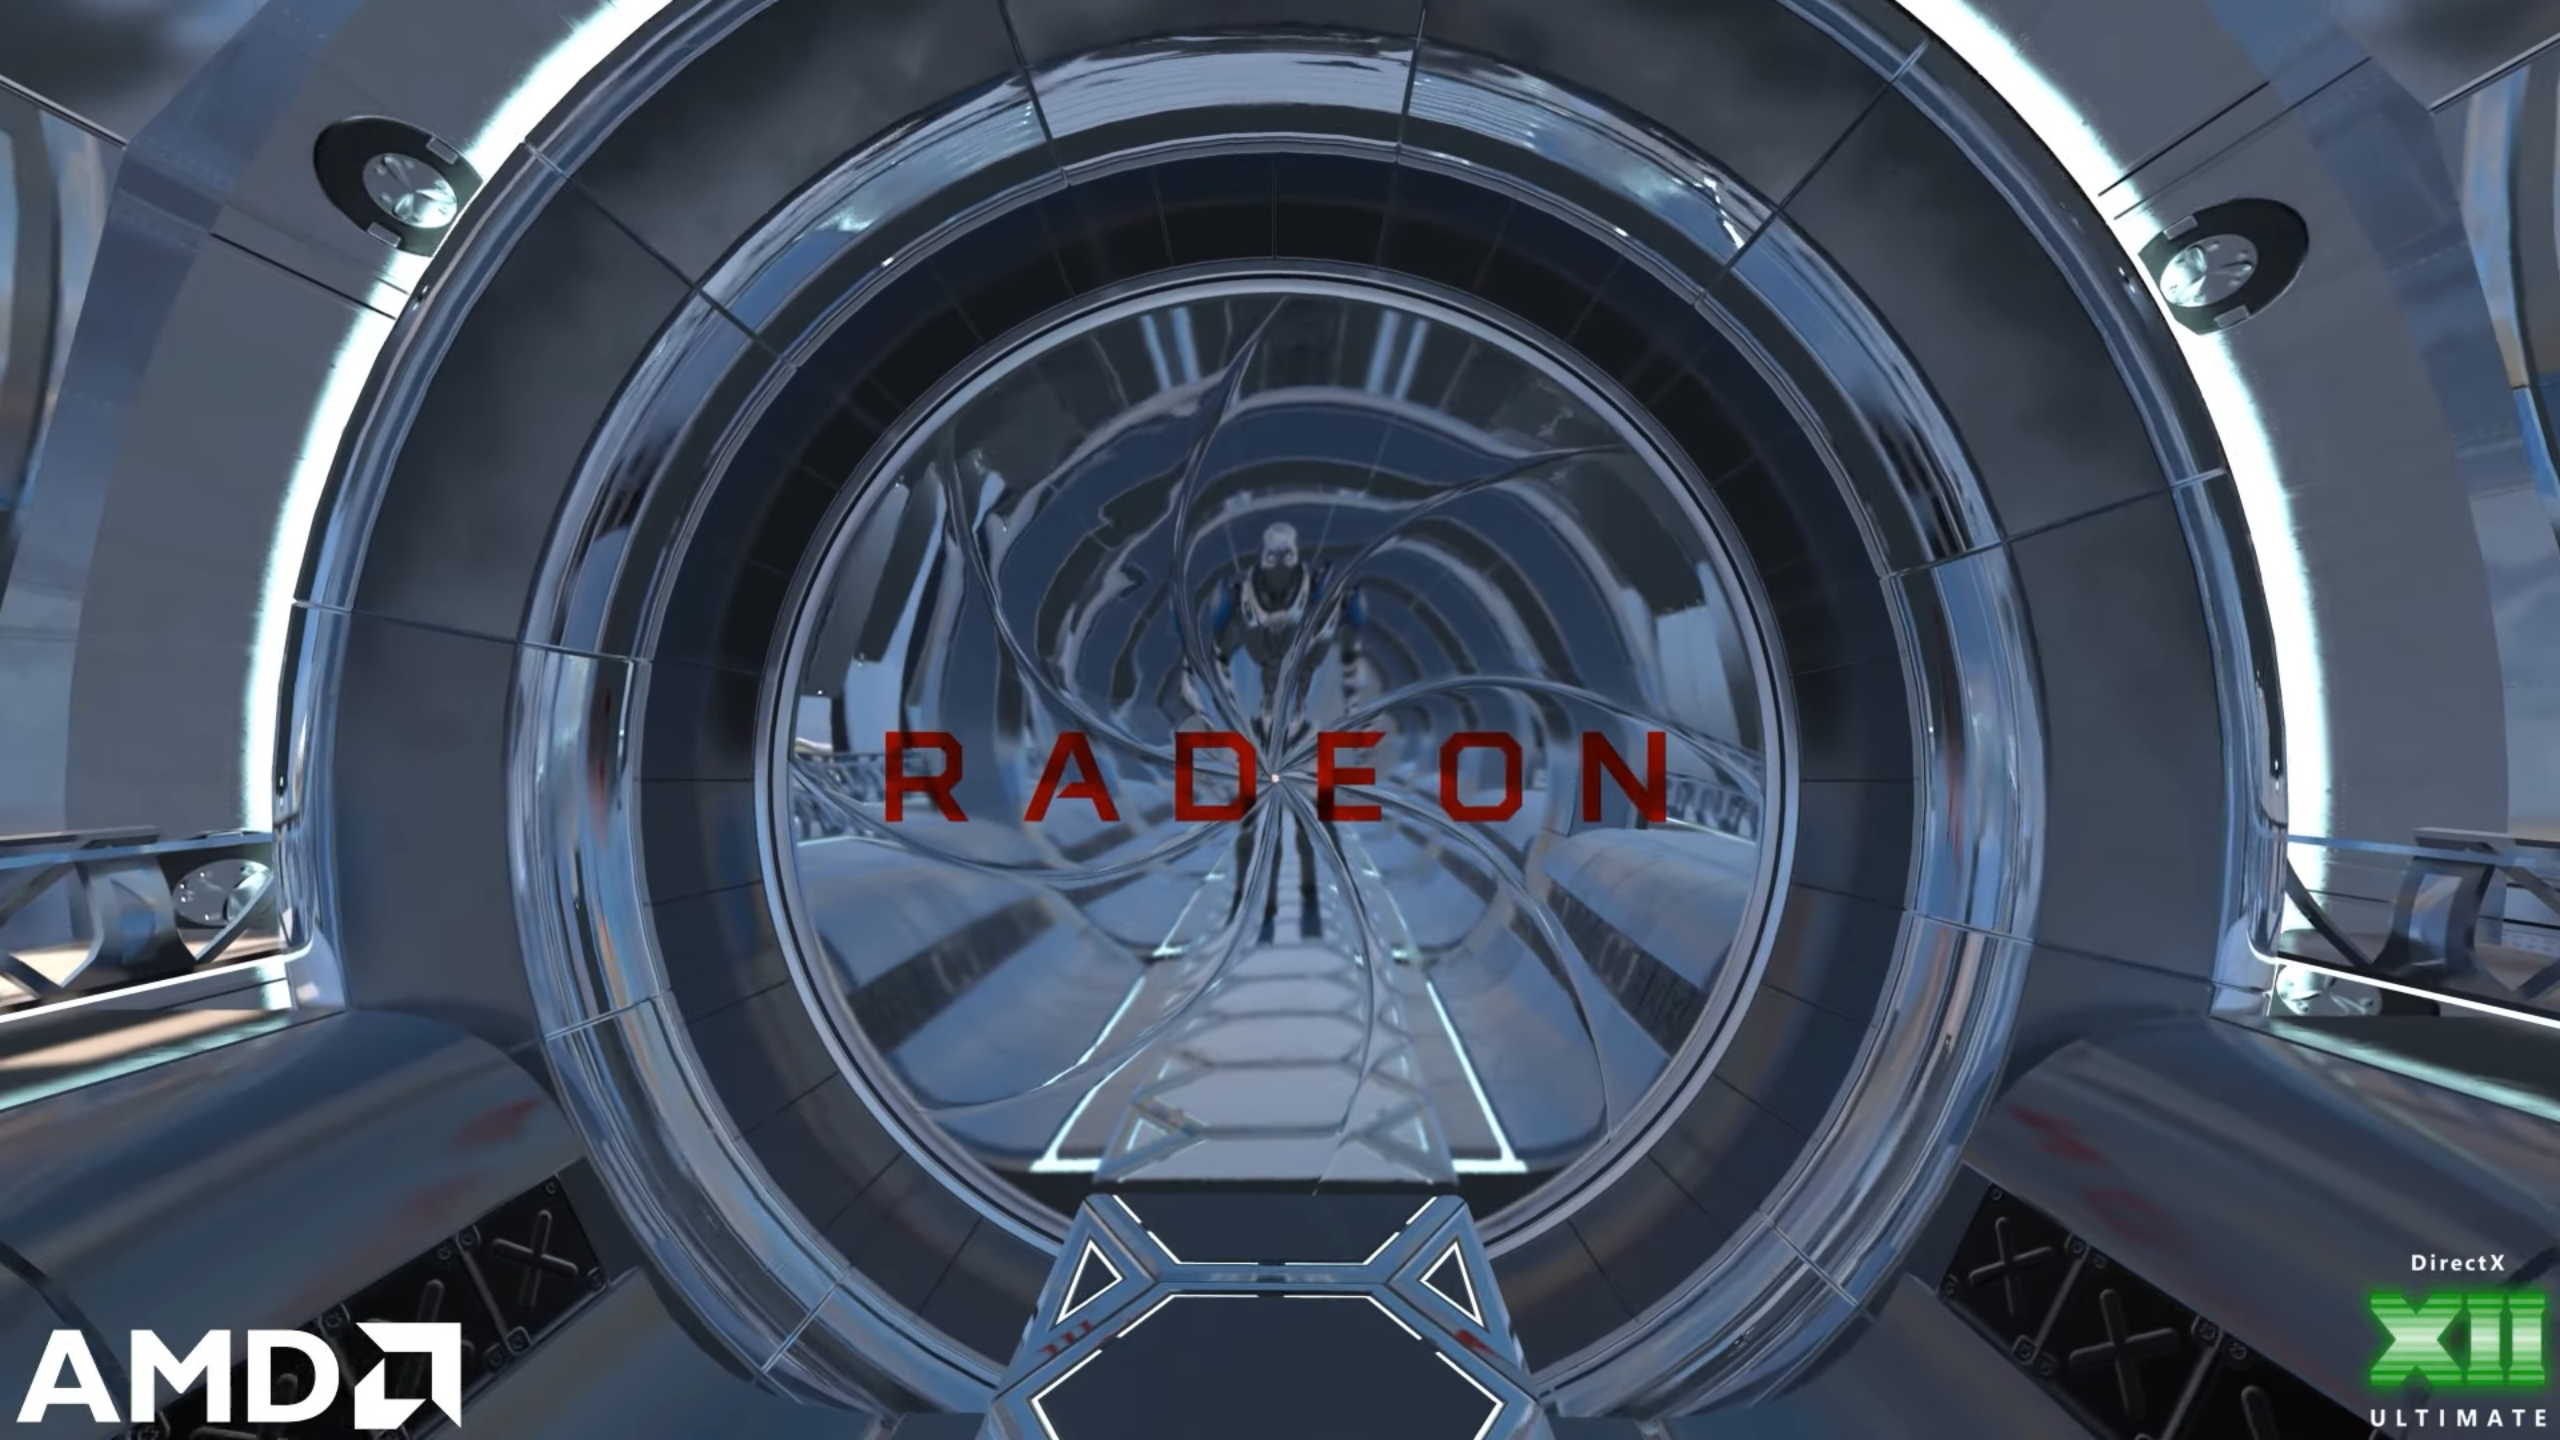 Amd Rdna 2 Gpu Directx Raytracing Demo For Radeon Rx Navi 2x Next Gen Consoles Unveiled